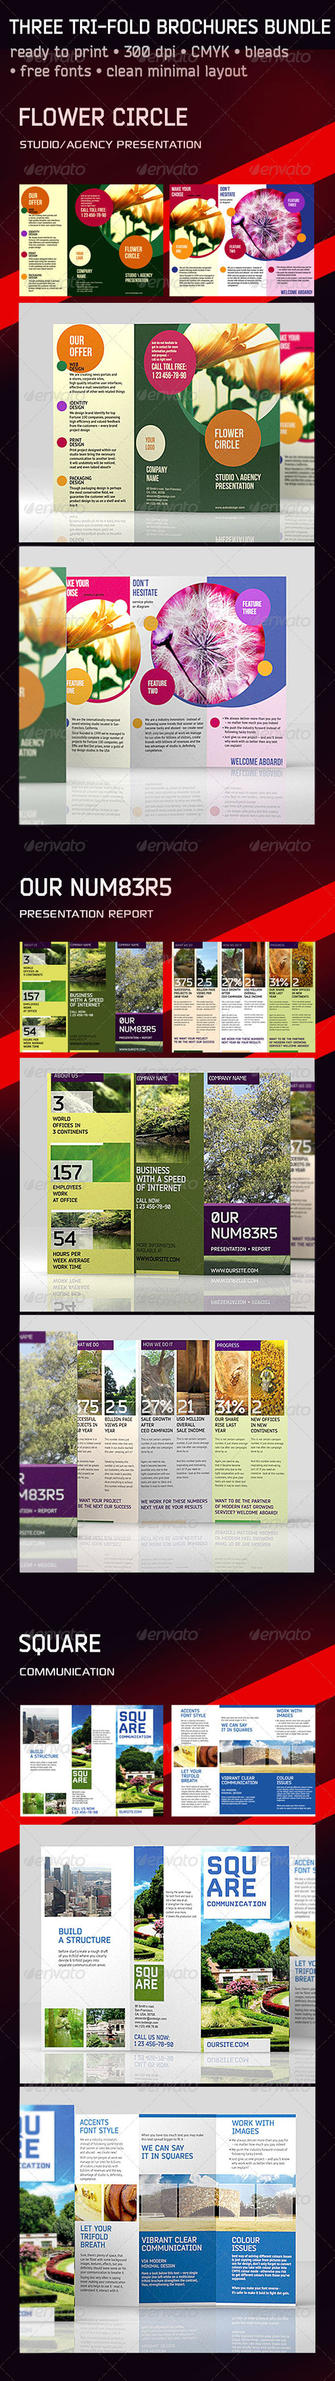 3 Trifold Brochure Set: Circle Square Numbers by theminimalnet